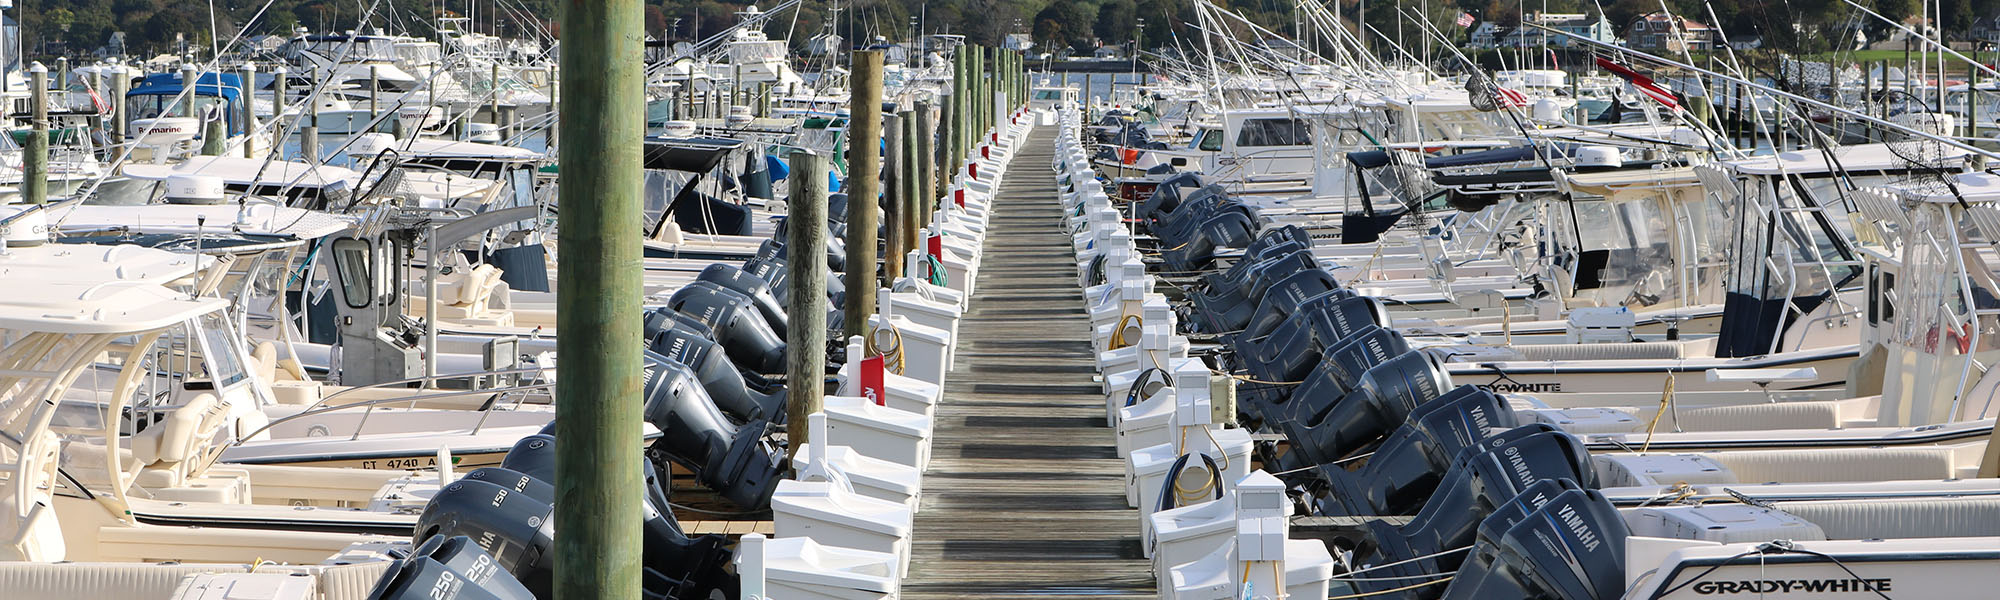 Boats Inc Marina dock outboards